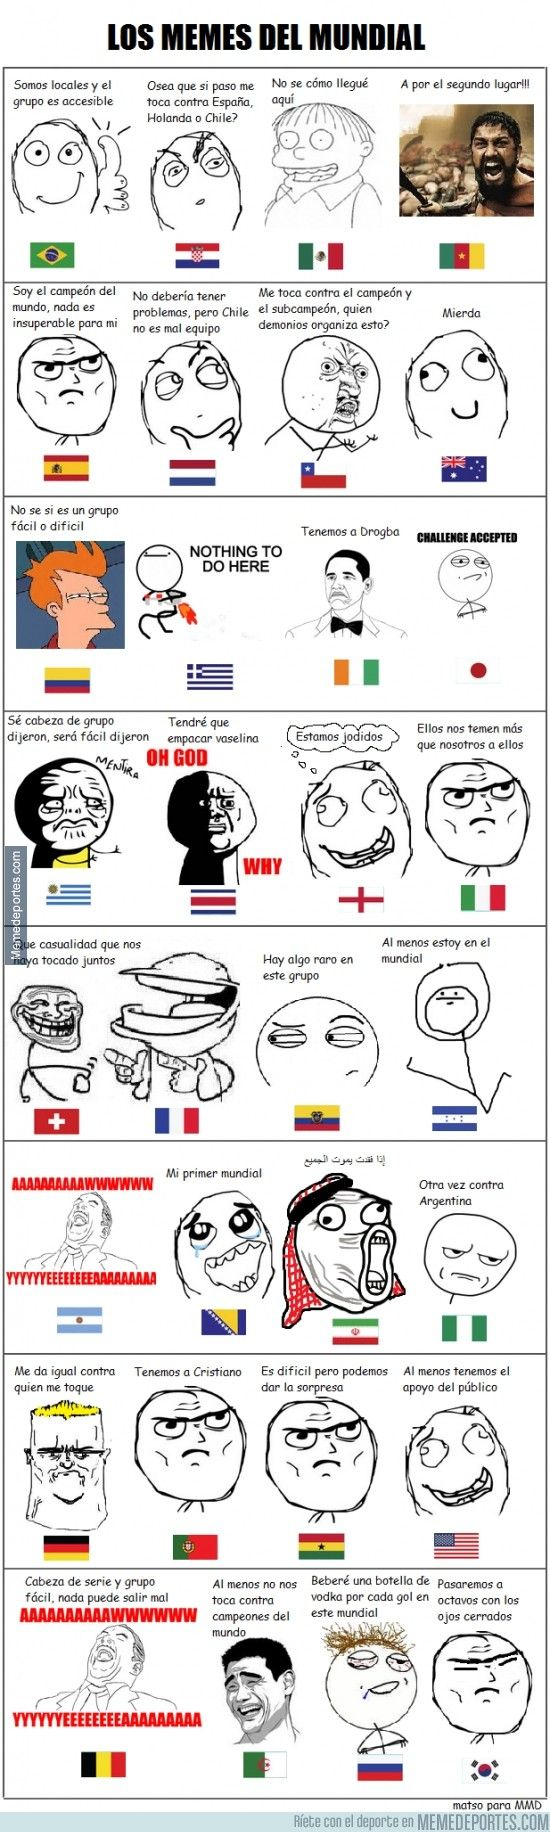 Los memes del mundial. Soccer World Cup Brasil 2014 most of these turn out to be false!